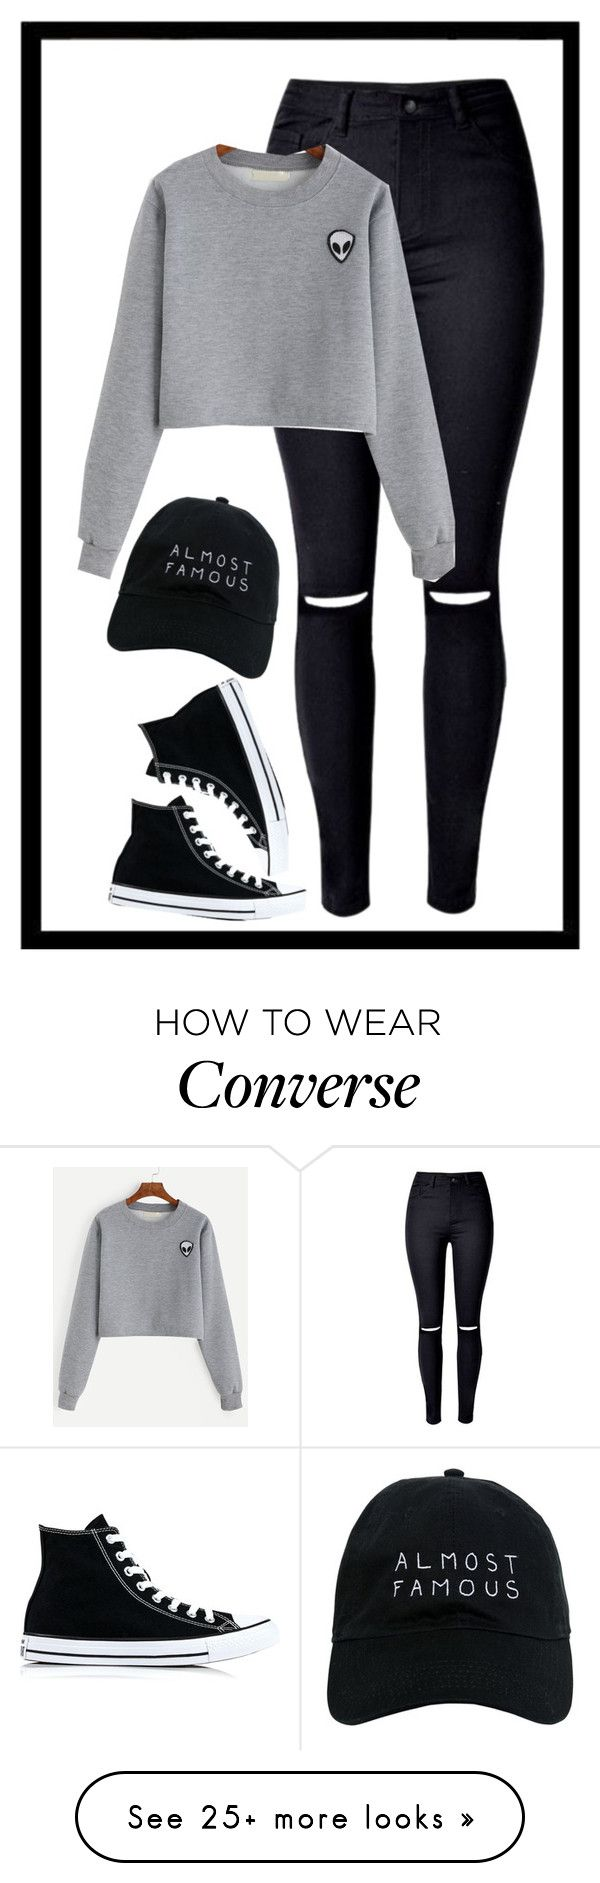 2019 year lifestyle- Converse Black outfits tumblr pictures